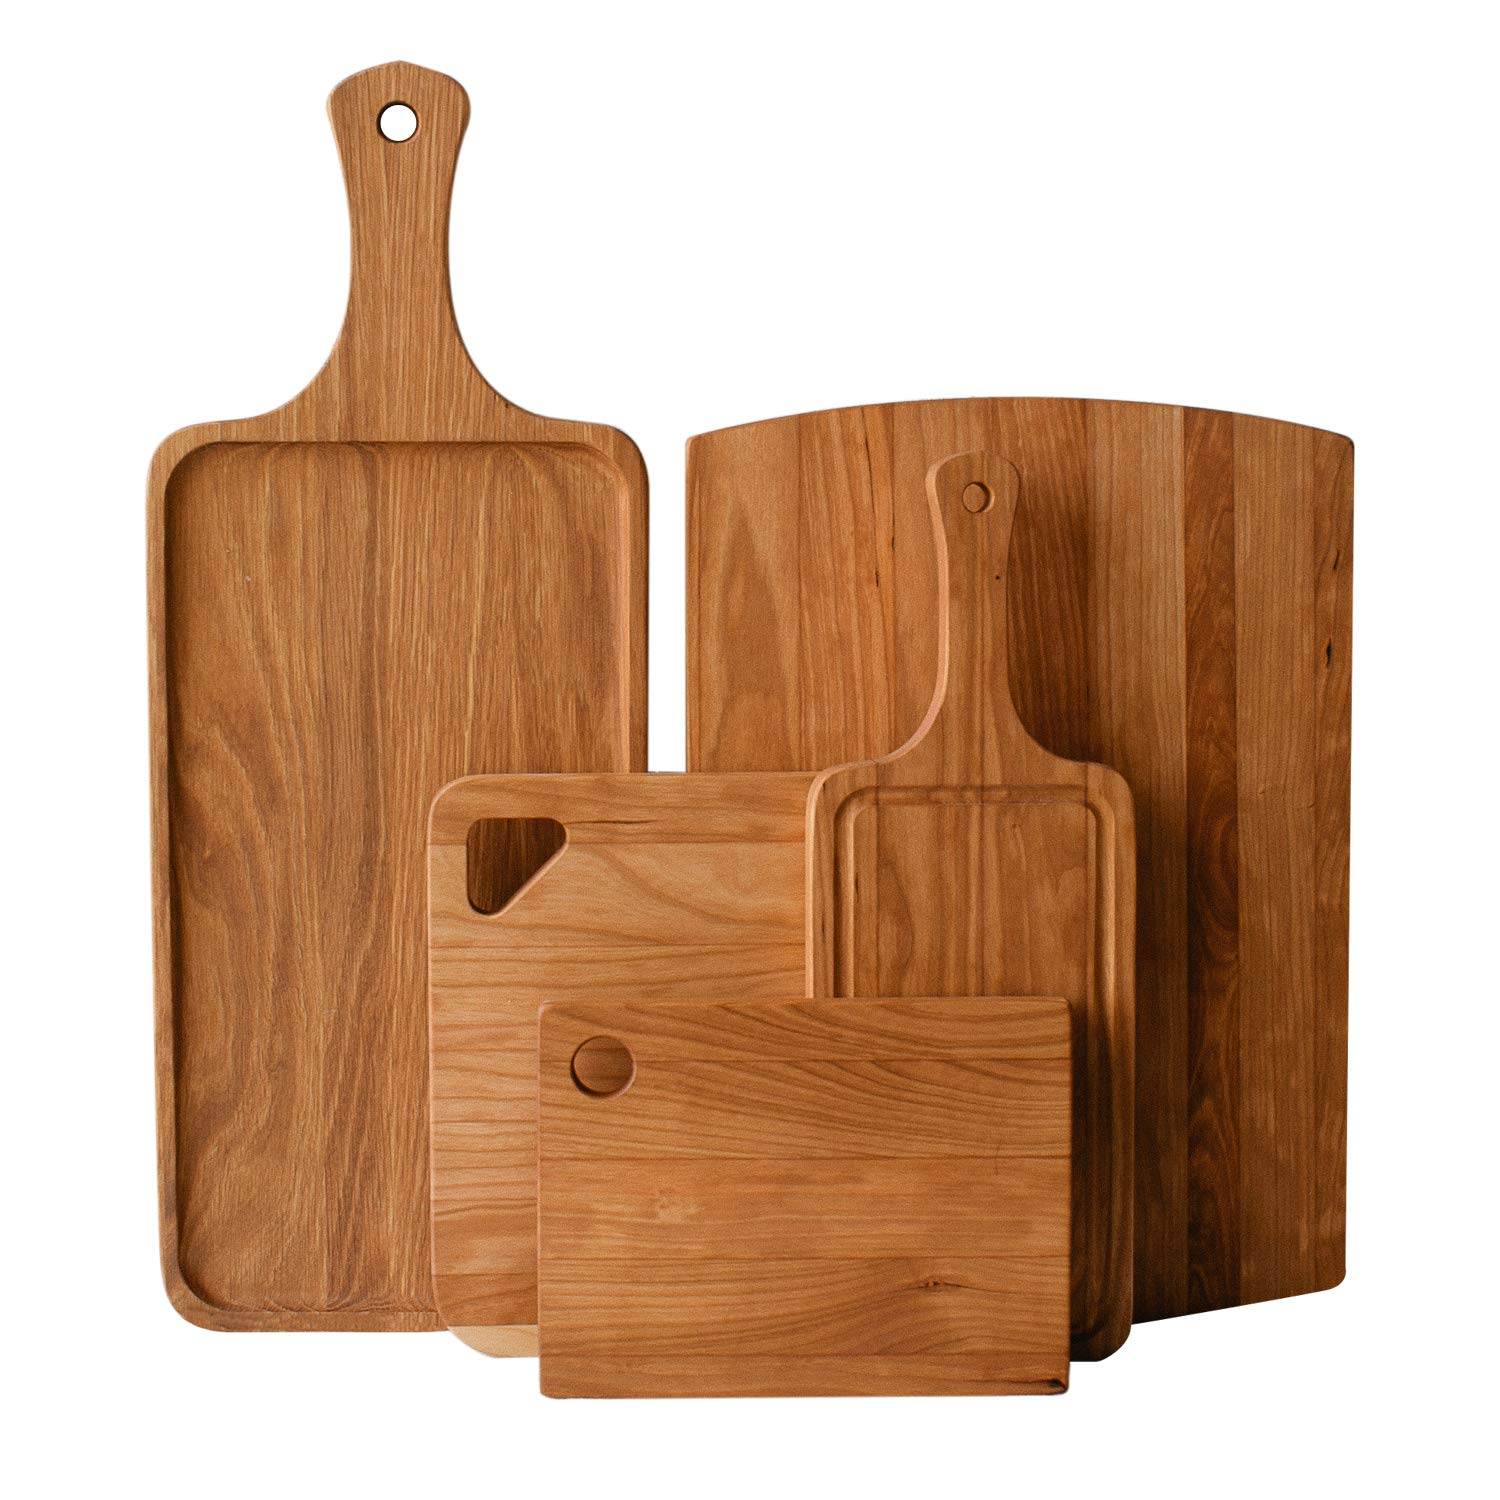 Small South Max 68% OFF Bend Woodworks Personalized C - Wooden Quantity limited Cutting Board